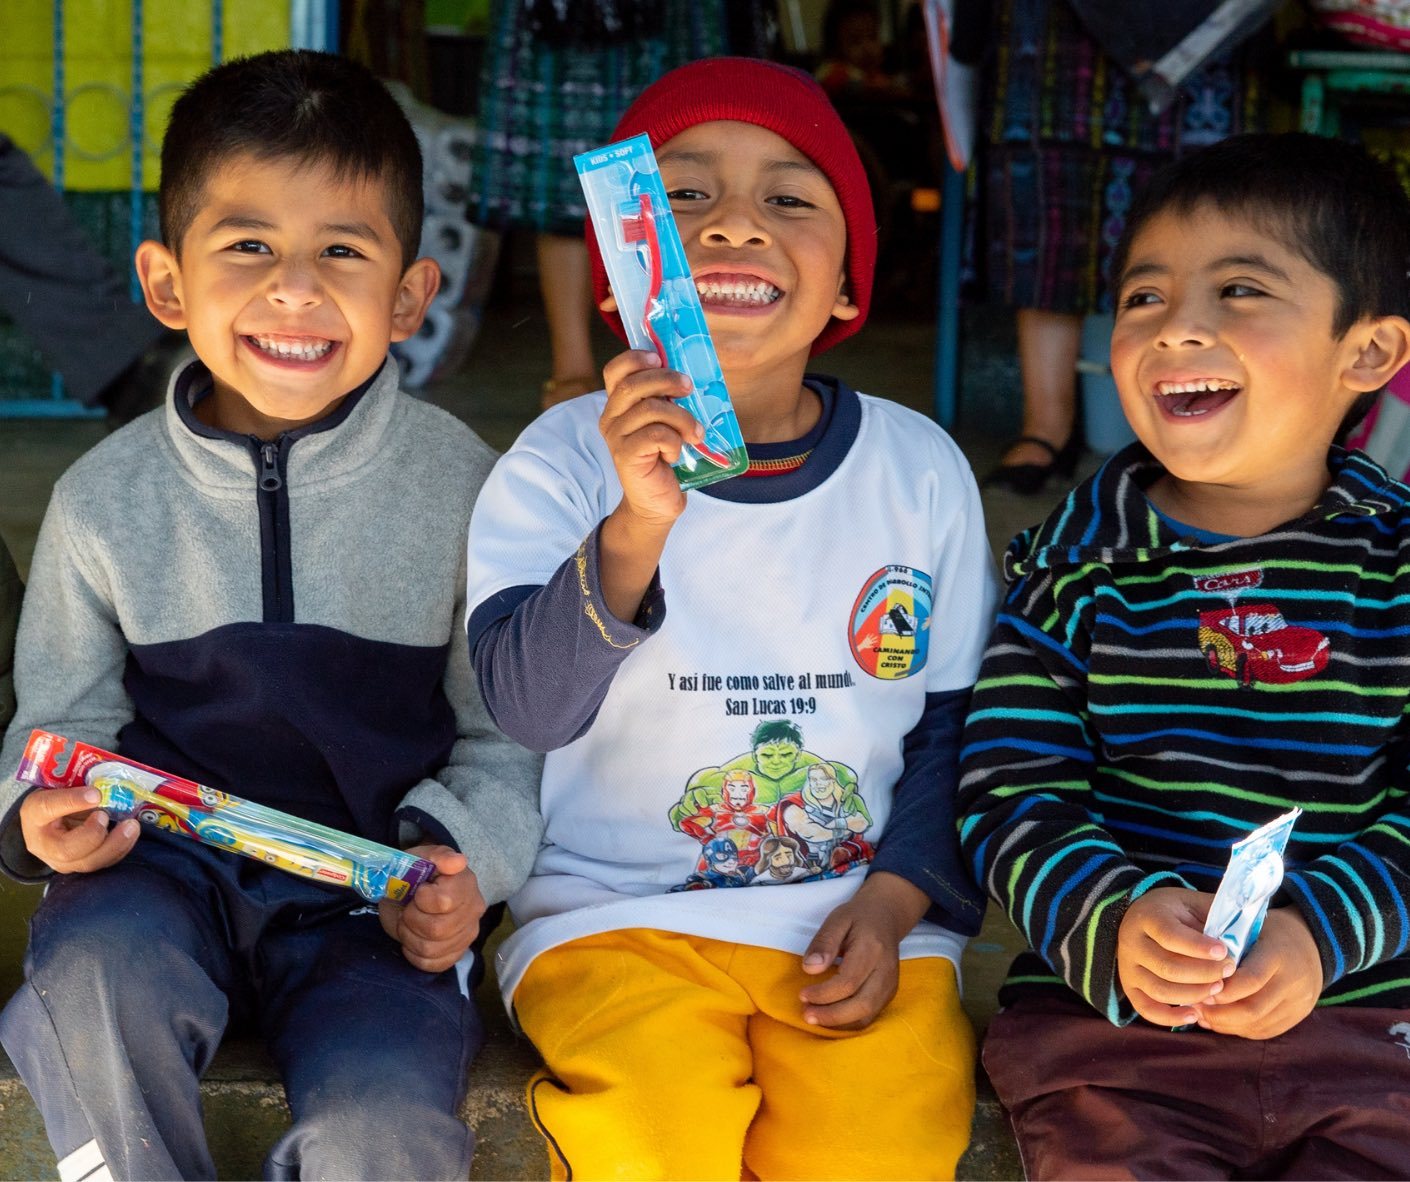 Children happy smiling holding up toothbrushes